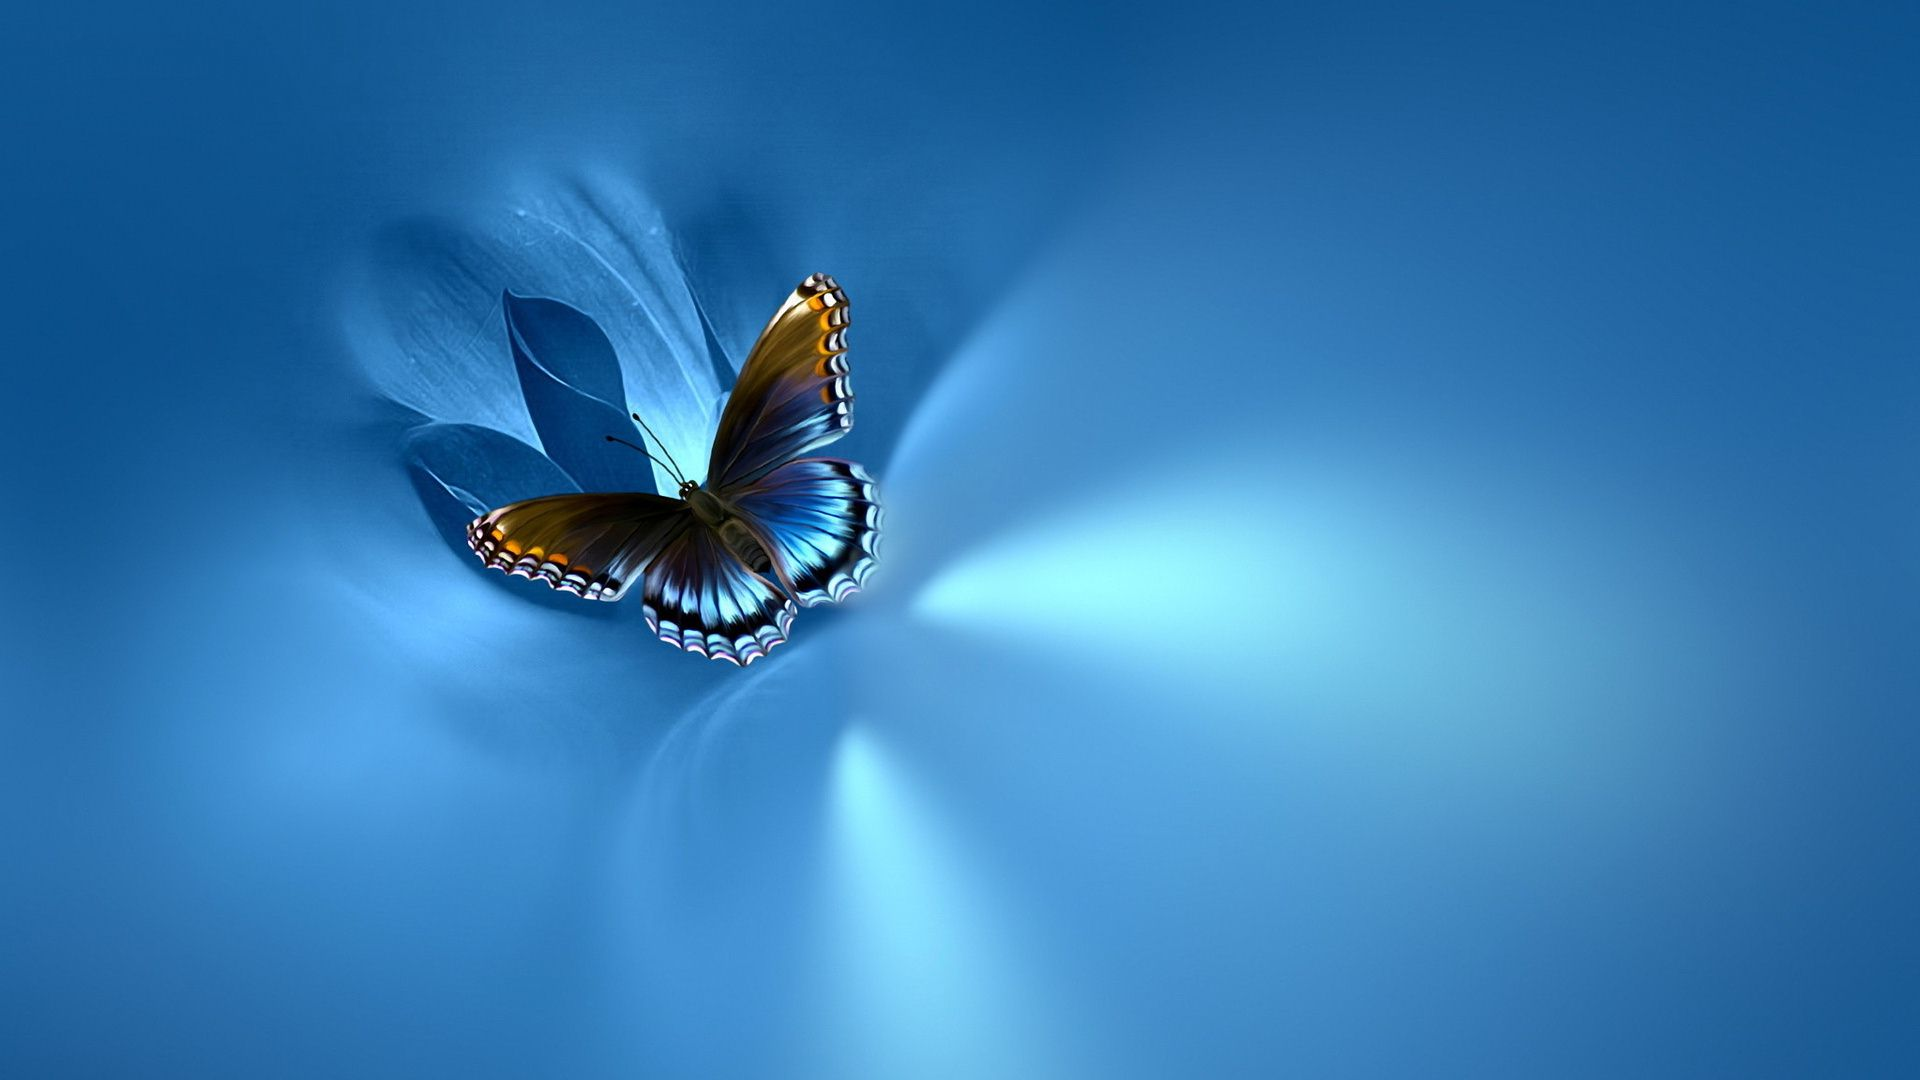 Blue Butterfly Wallpaper Desktop